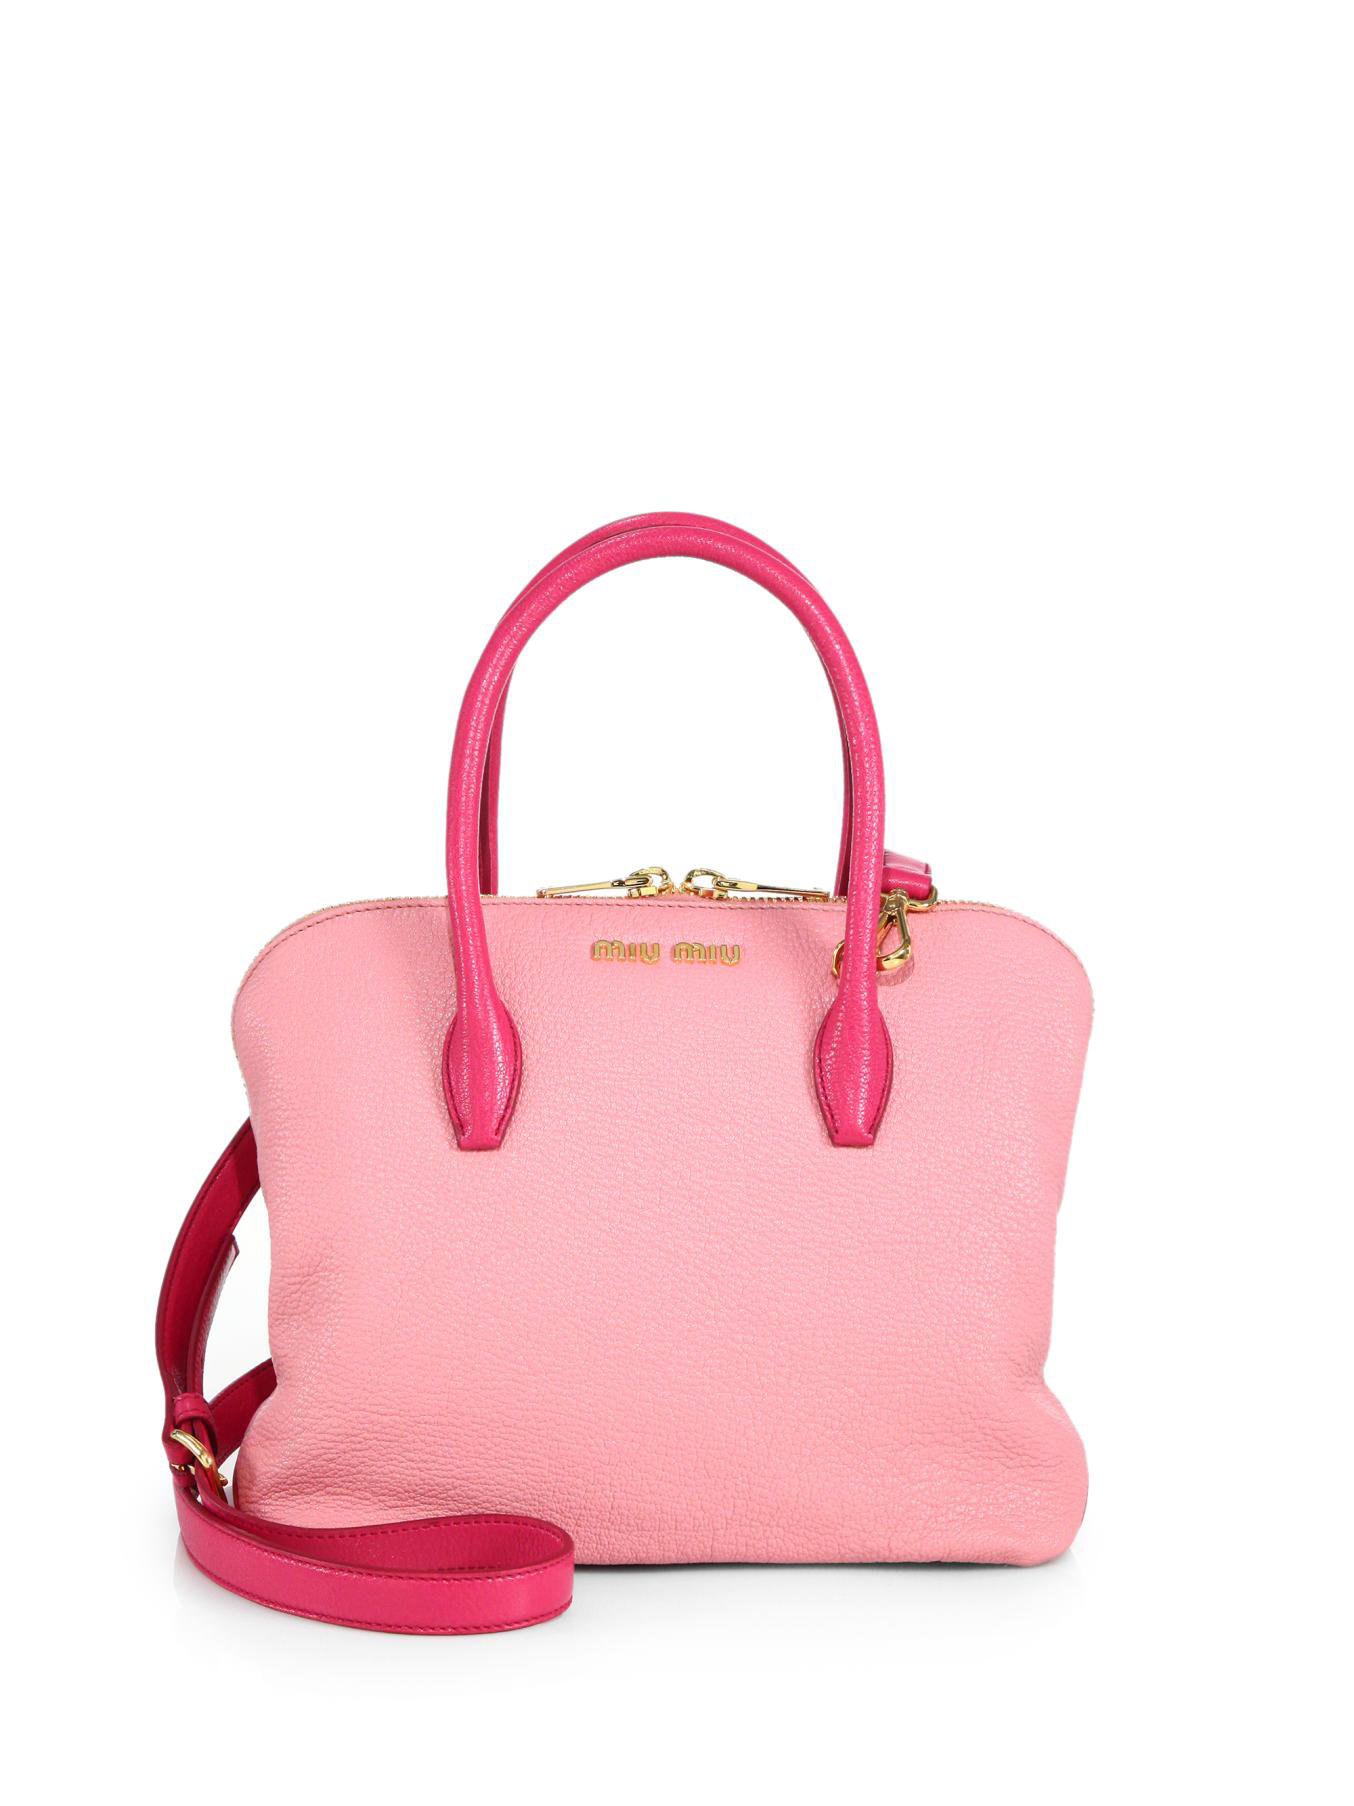 miu miu madras small leather tote in pink lyst. Black Bedroom Furniture Sets. Home Design Ideas